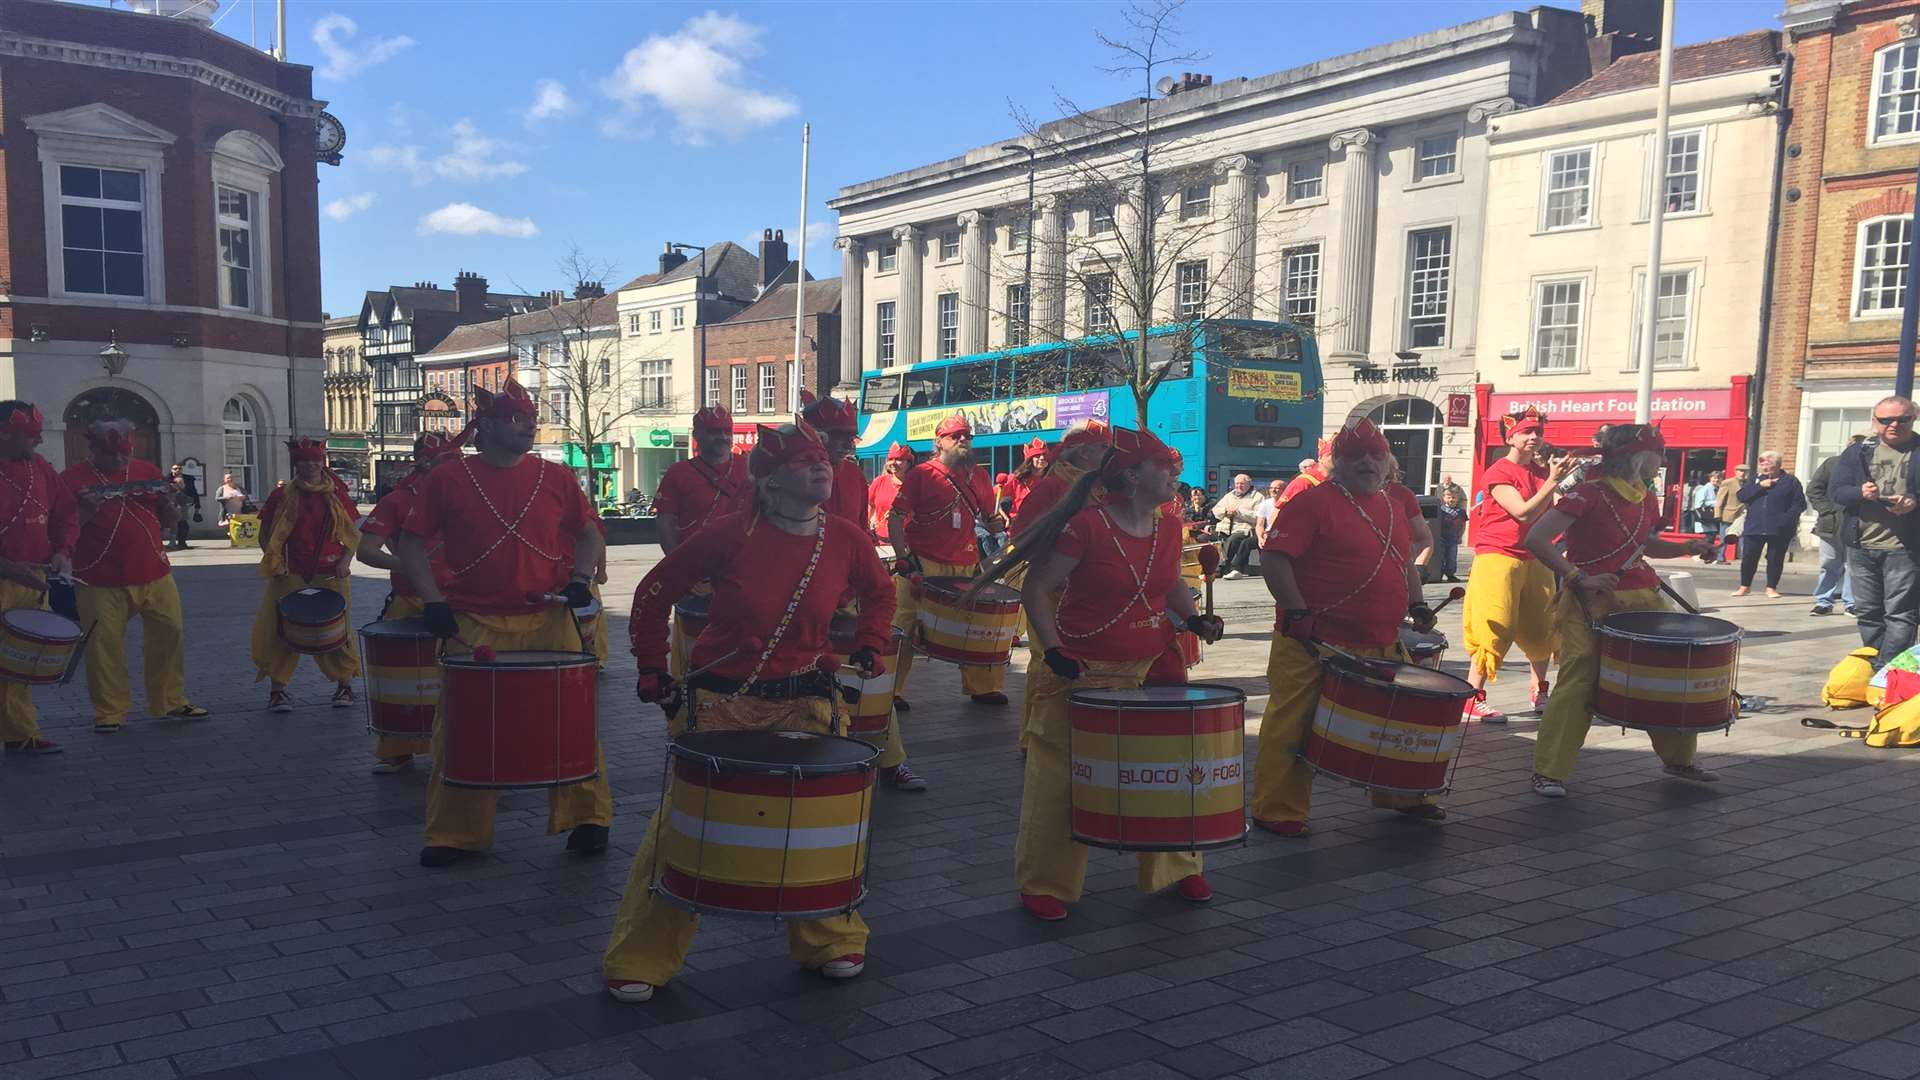 Bloco Fogo entertained crowds in Maidstone today.